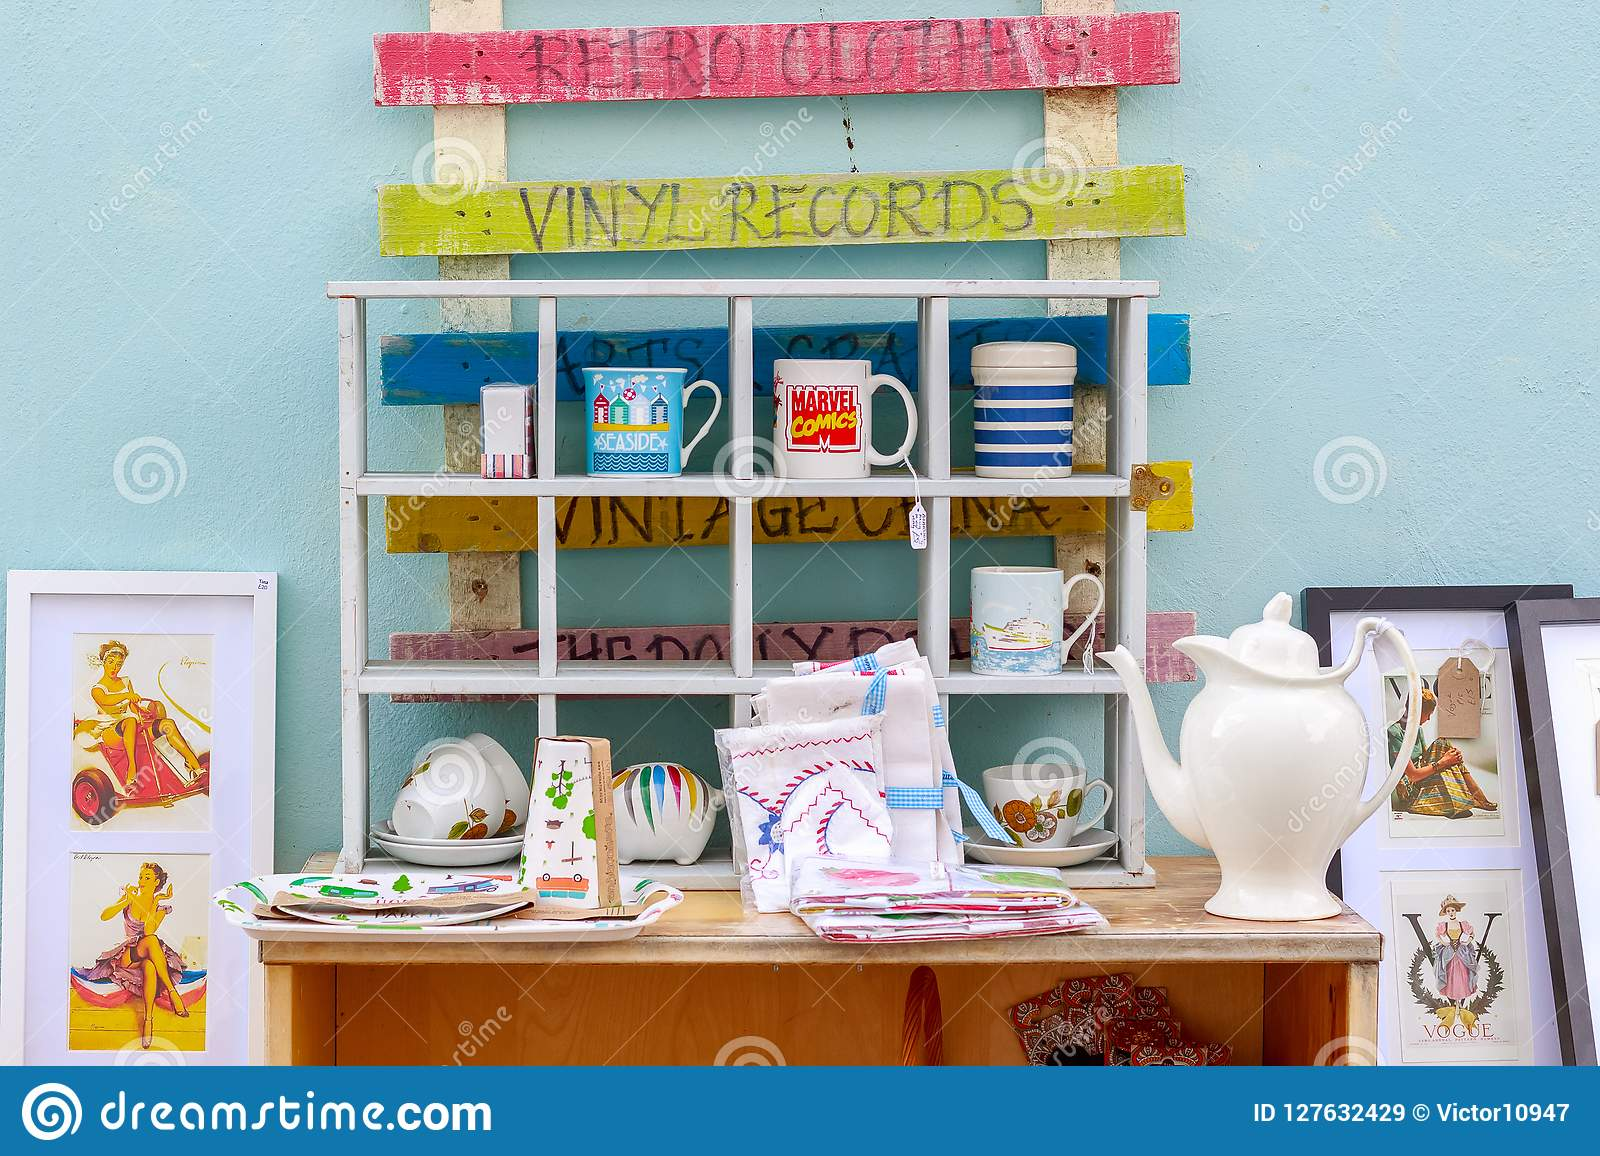 Outdoor vintage shop in Southwold, a popular seaside town in the